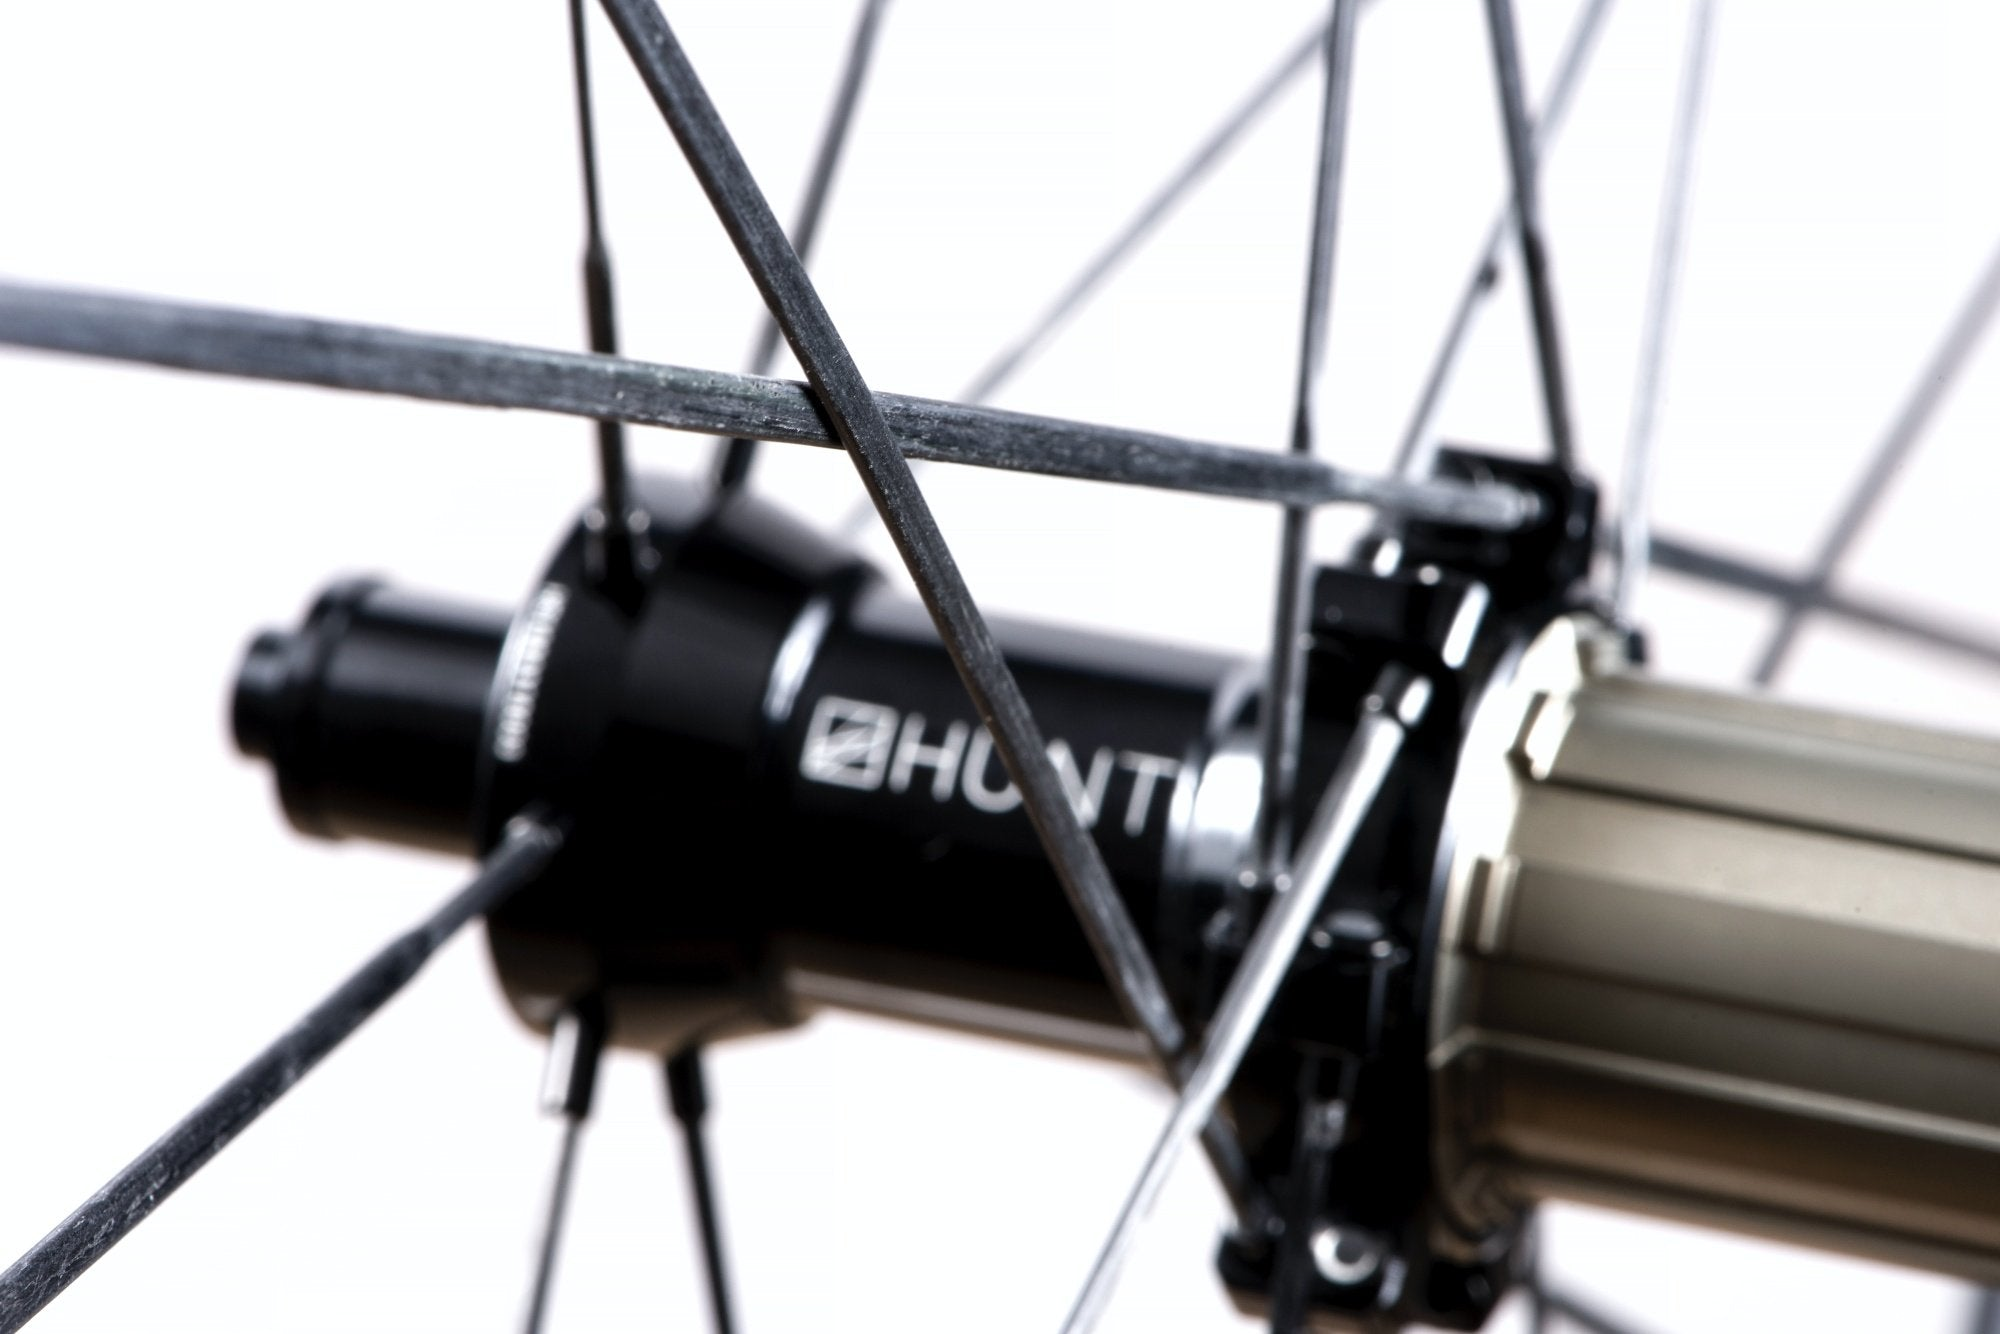 <h1>Spokes</h1><i>Incredibly strong (achieving over 450kgf per spoke) TaperLock UD carbon spokes offering 30% increase in stiffness against steel ones. Only 2.7g per spoke. Due to the TaperLock technology, these spokes can be trued easily using a spoke key from within the rim bed.</i>